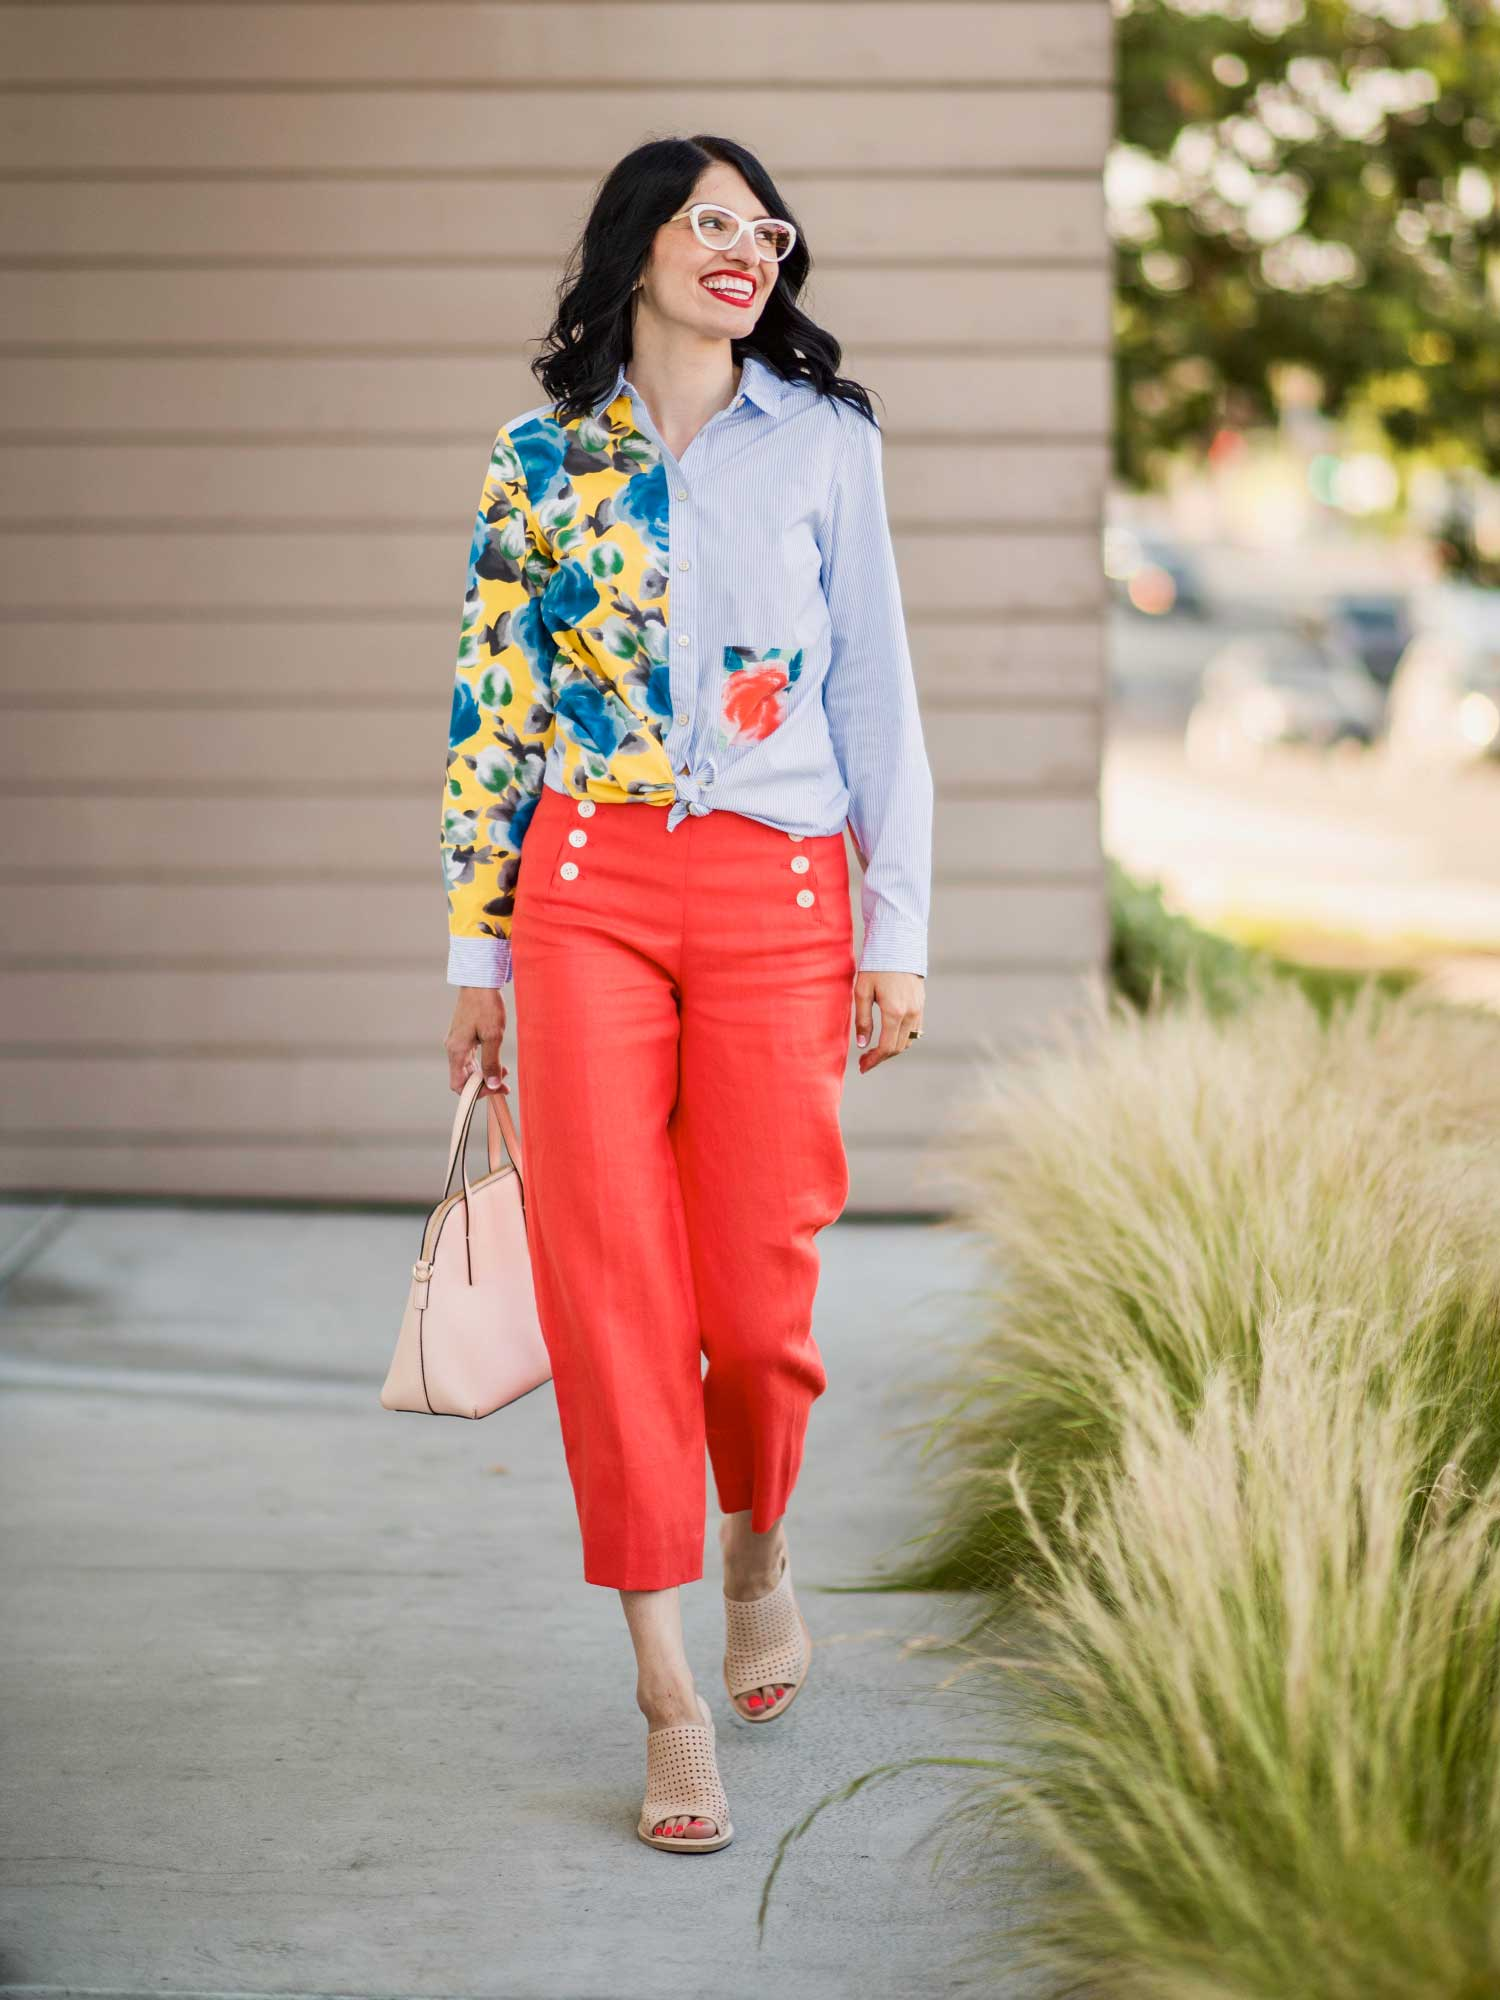 Jenna-Pilant-San-Diego-Style-Blogger-Lucky-Little-Mustardseed-How-To-Wear-Your-Husband's-Shirt-5